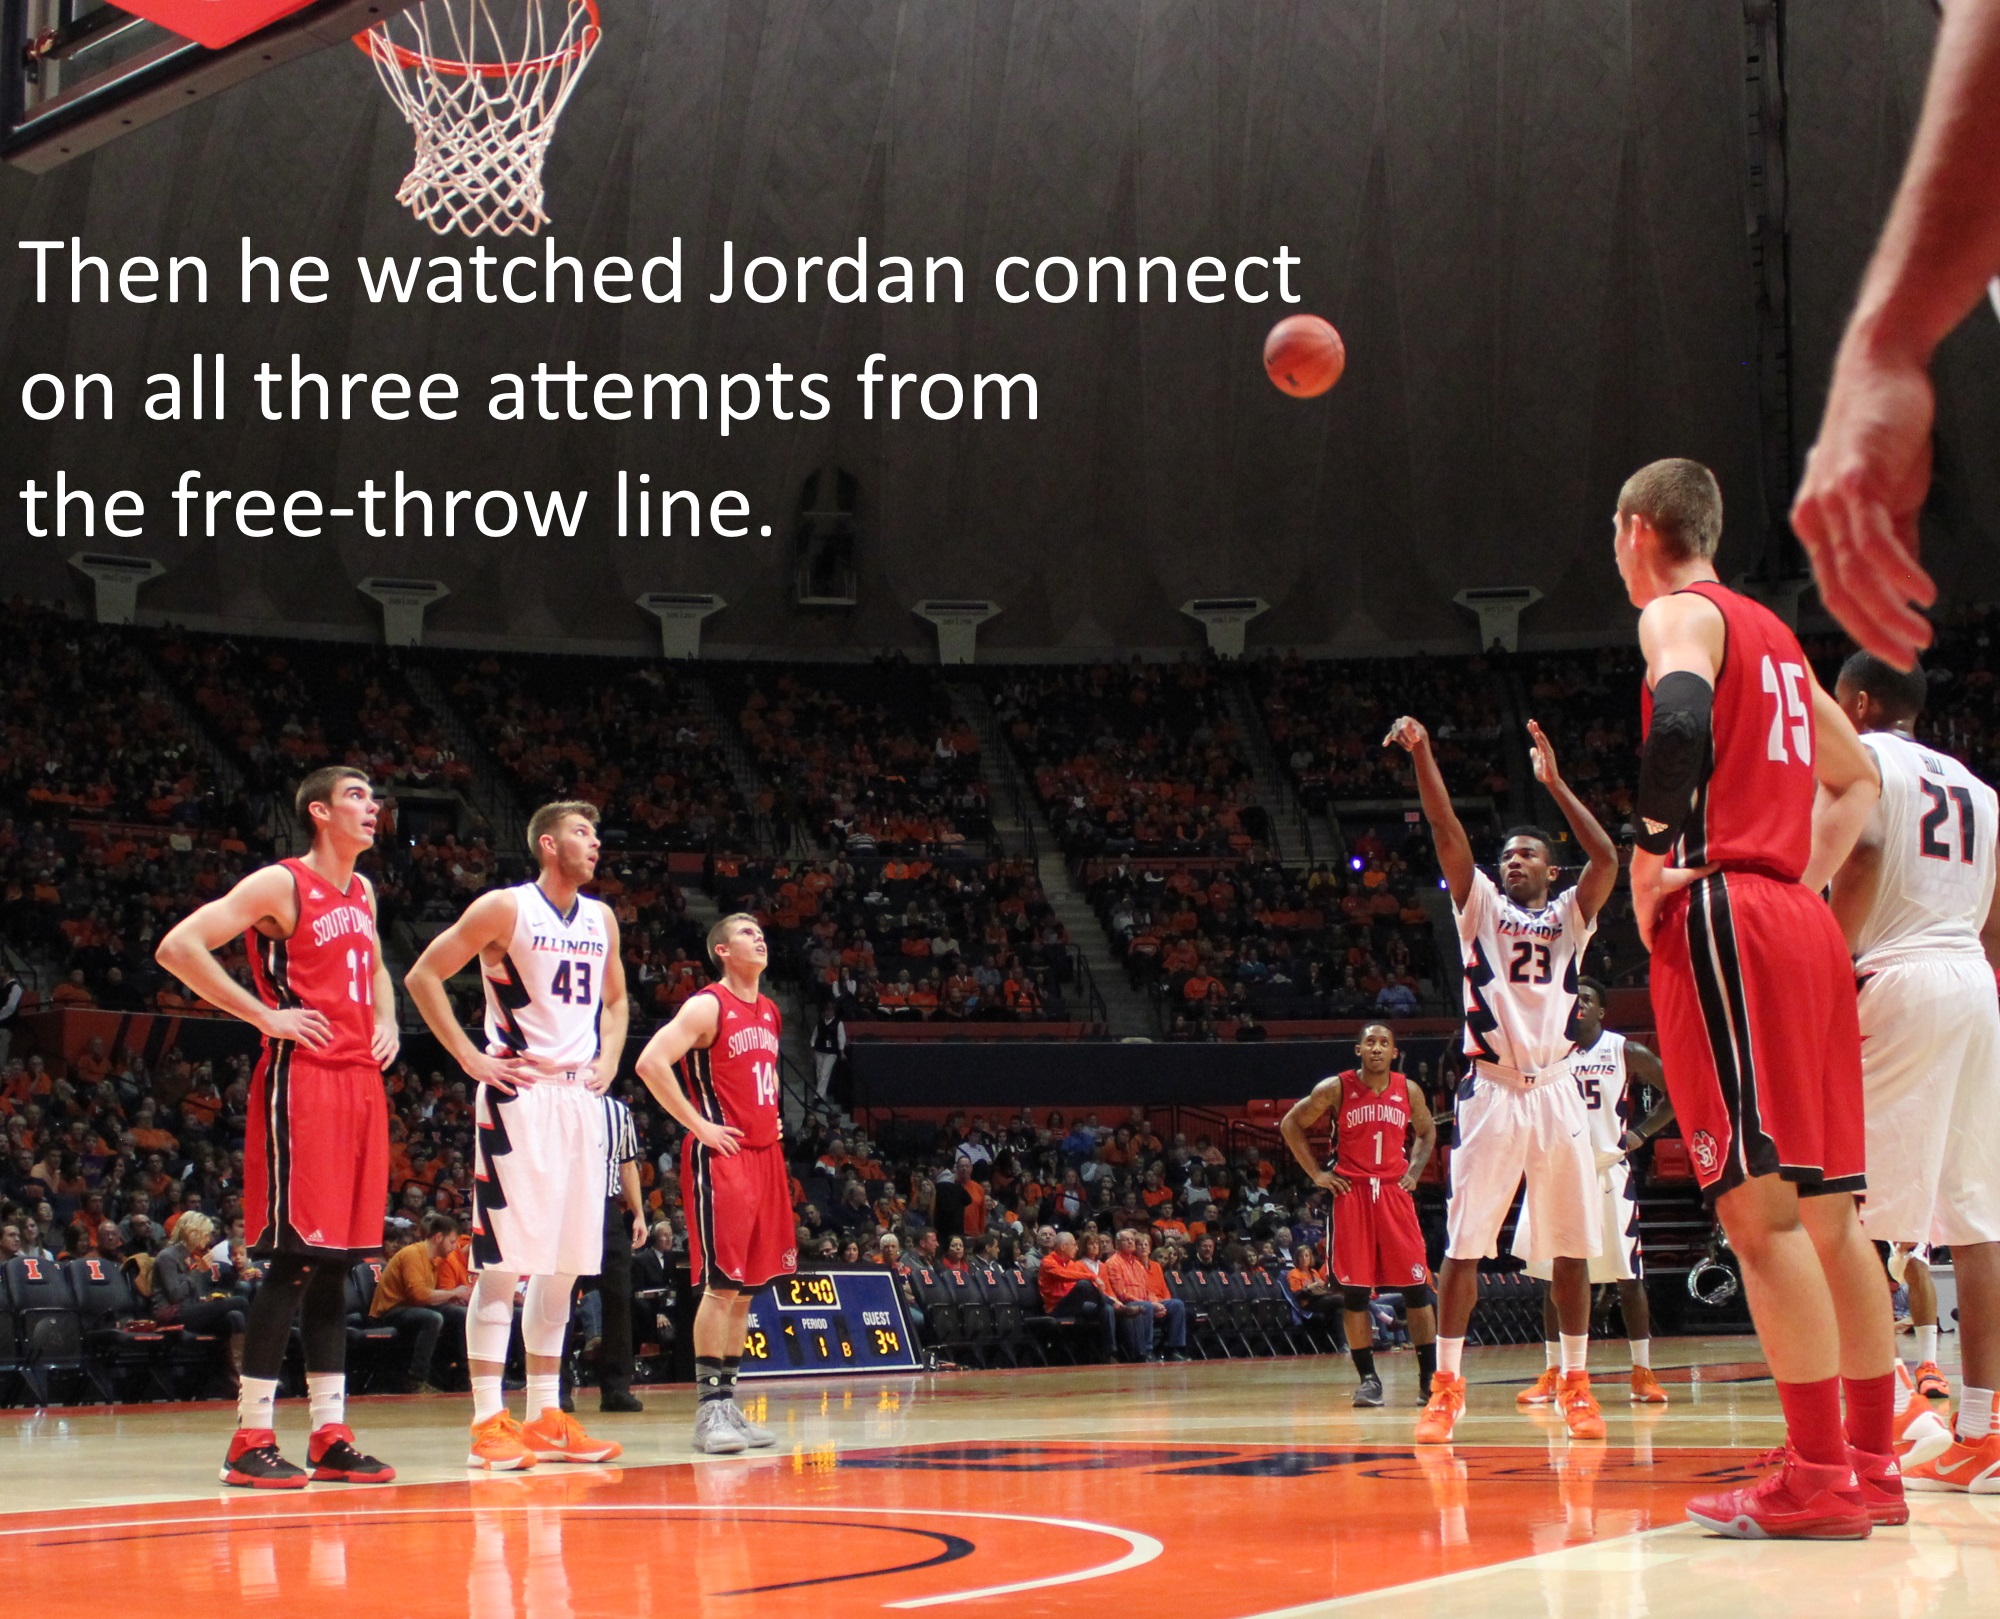 Then Hagedorn watched Aaron Jordan connect on all three attempts from the free-throw line